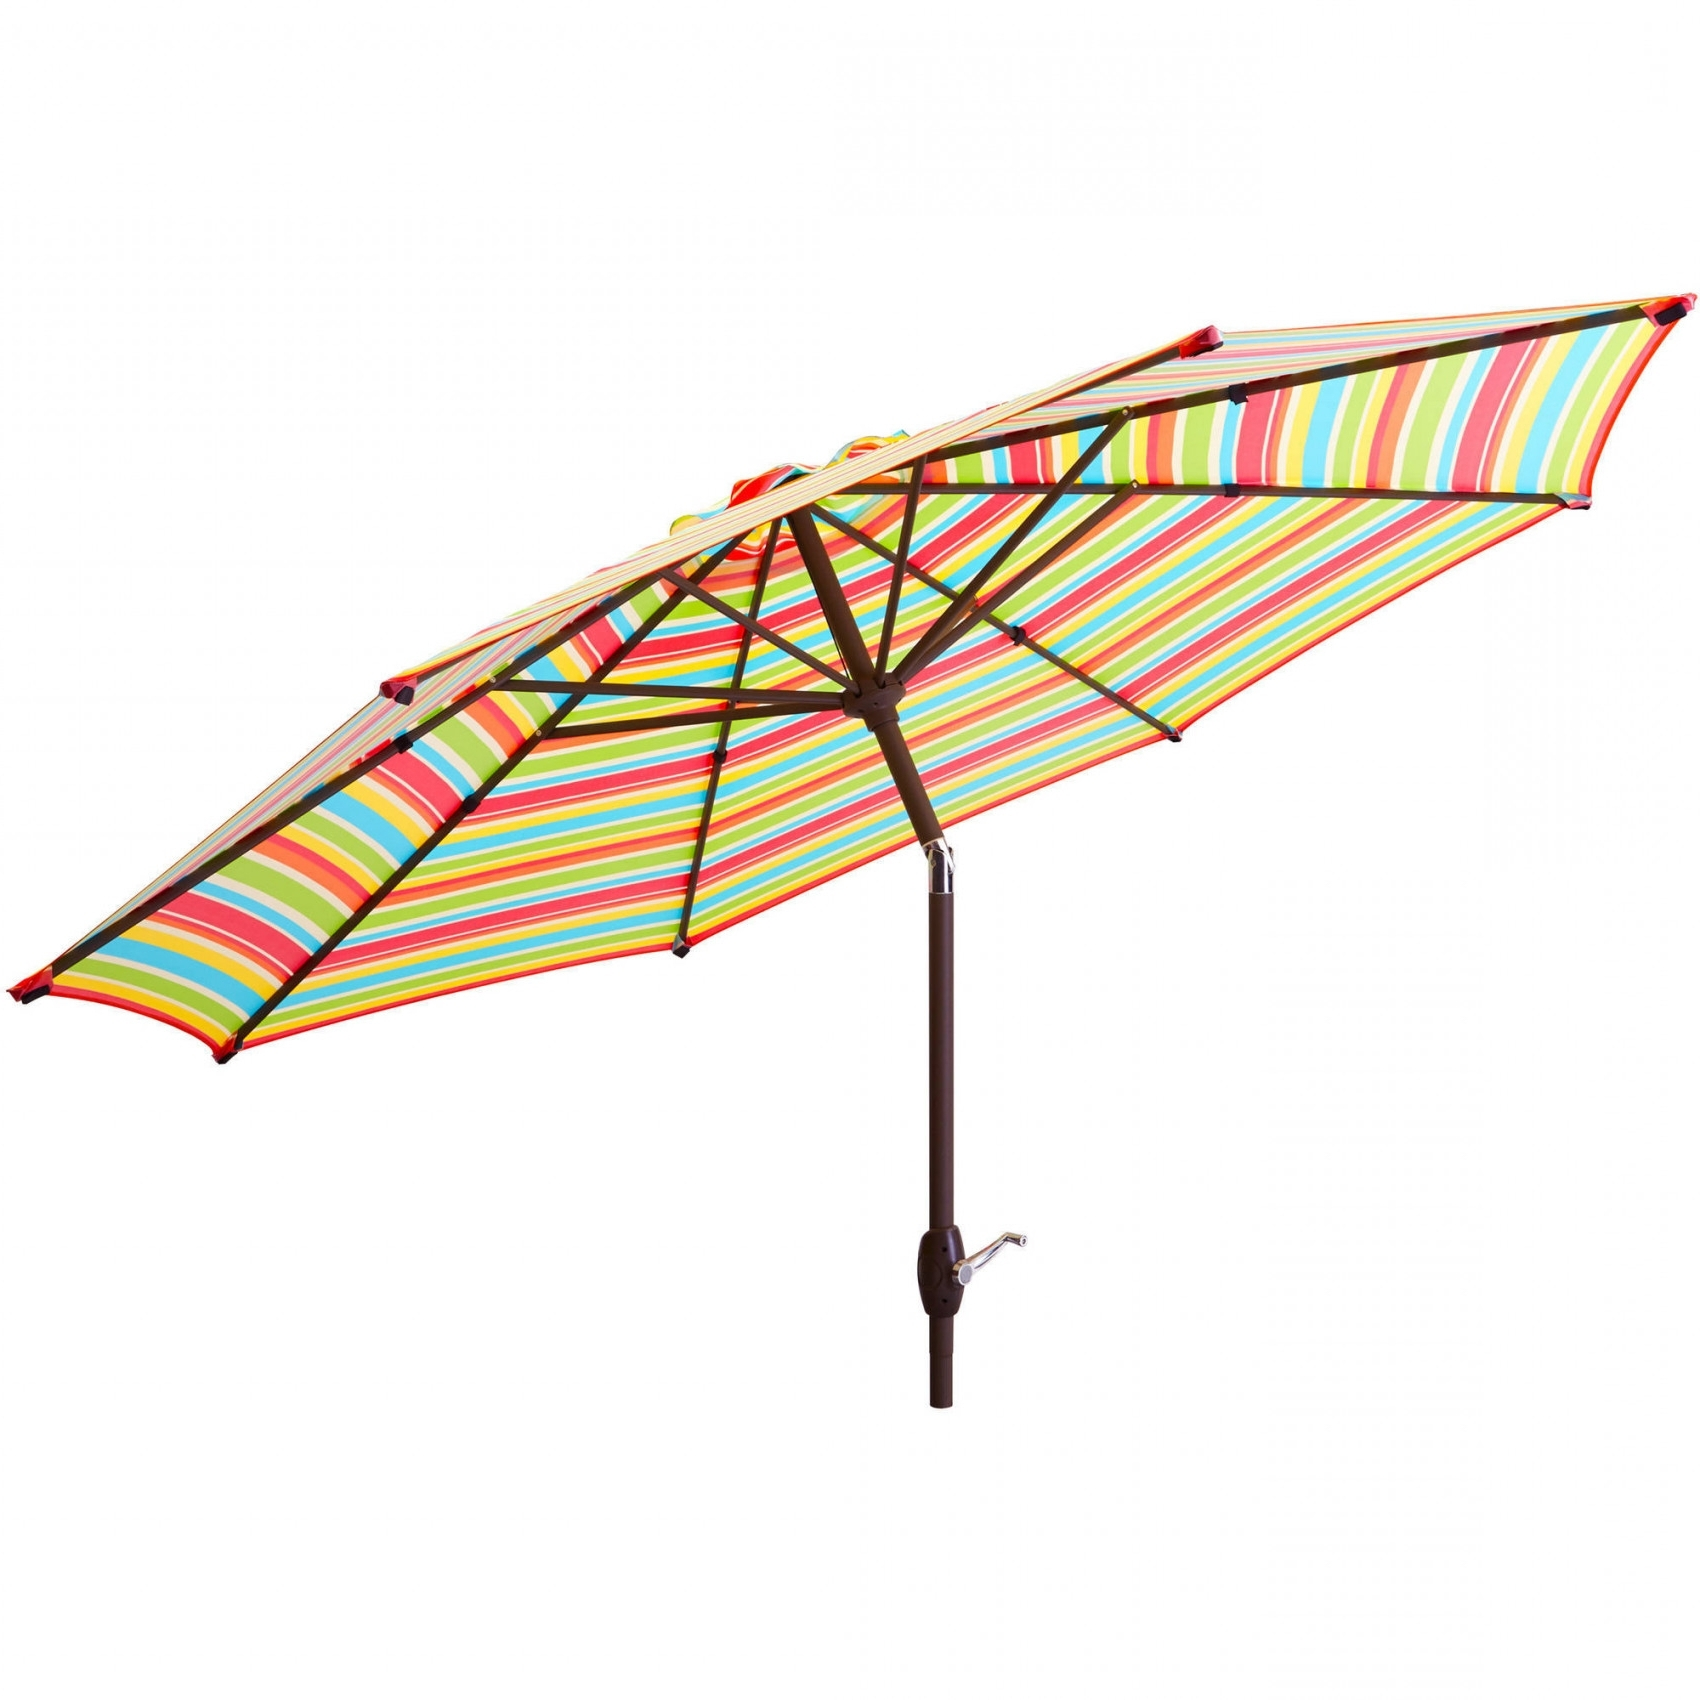 Walmart Patio Umbrellas Regarding Trendy Patio Umbrellas Walmart – Home Design Ideas (View 18 of 20)